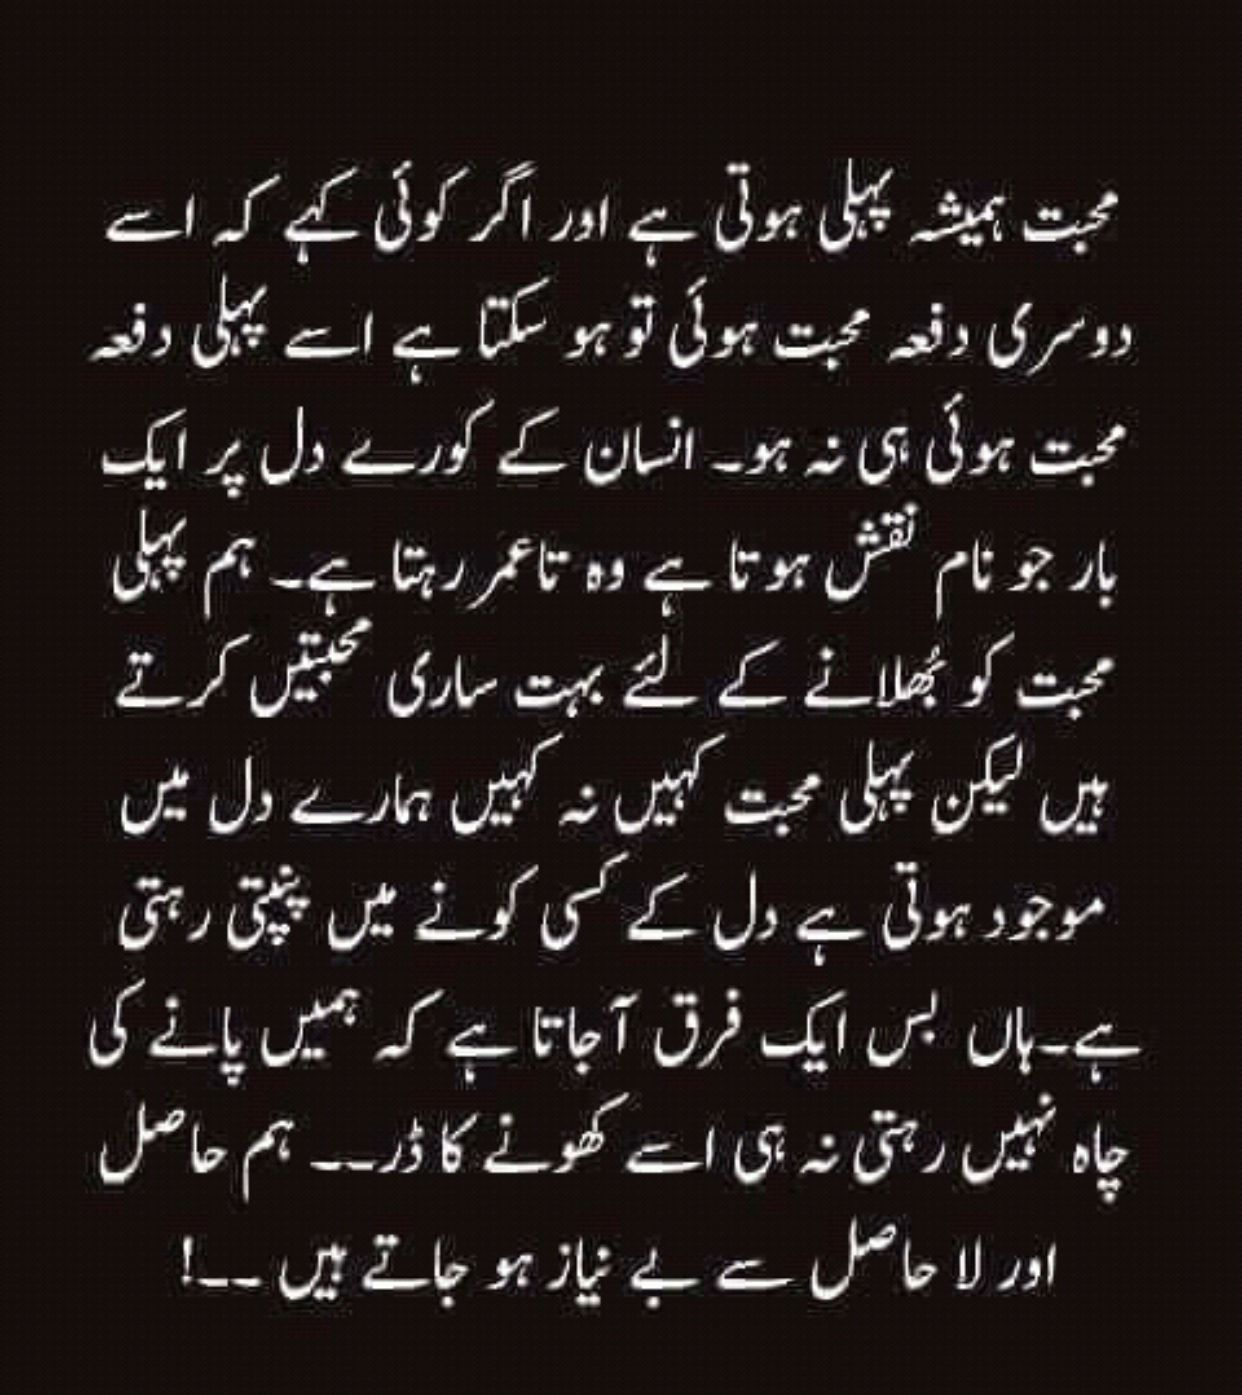 Pin by inocent khizer on urdu stuff pinterest urdu quotes urdu find this pin and more on urdu stuff by ikhizer stopboris Images